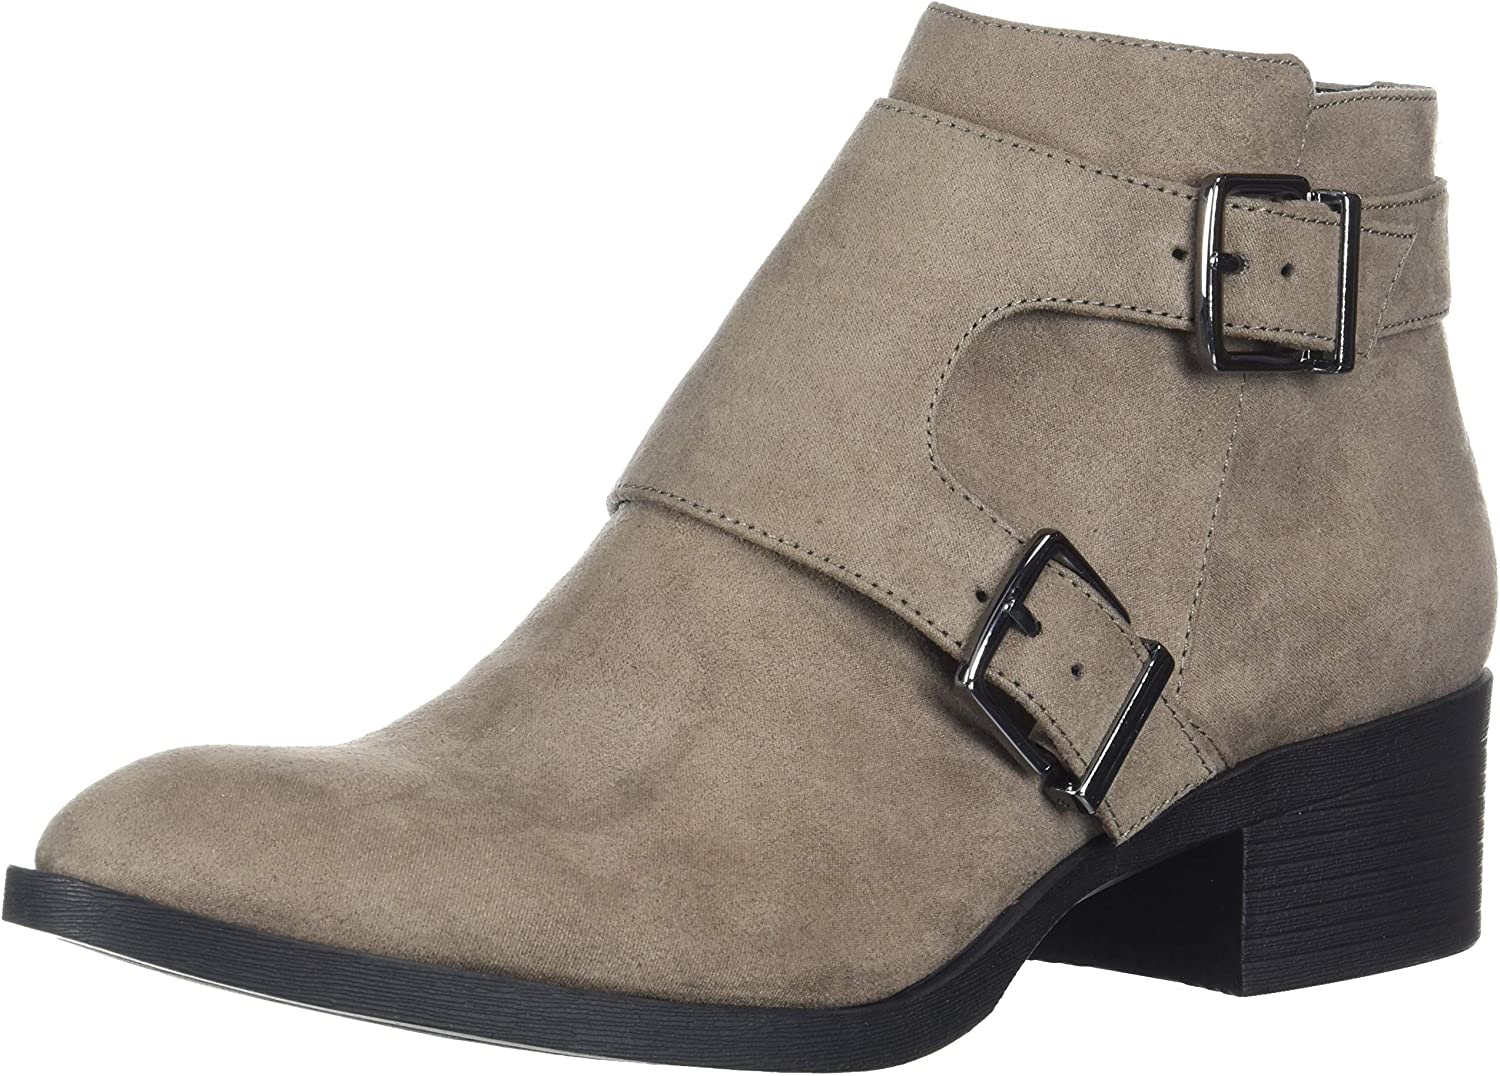 Kenneth Cole REACTION Womens Re-Buckle Moto Ankle Boot Ankle Boot